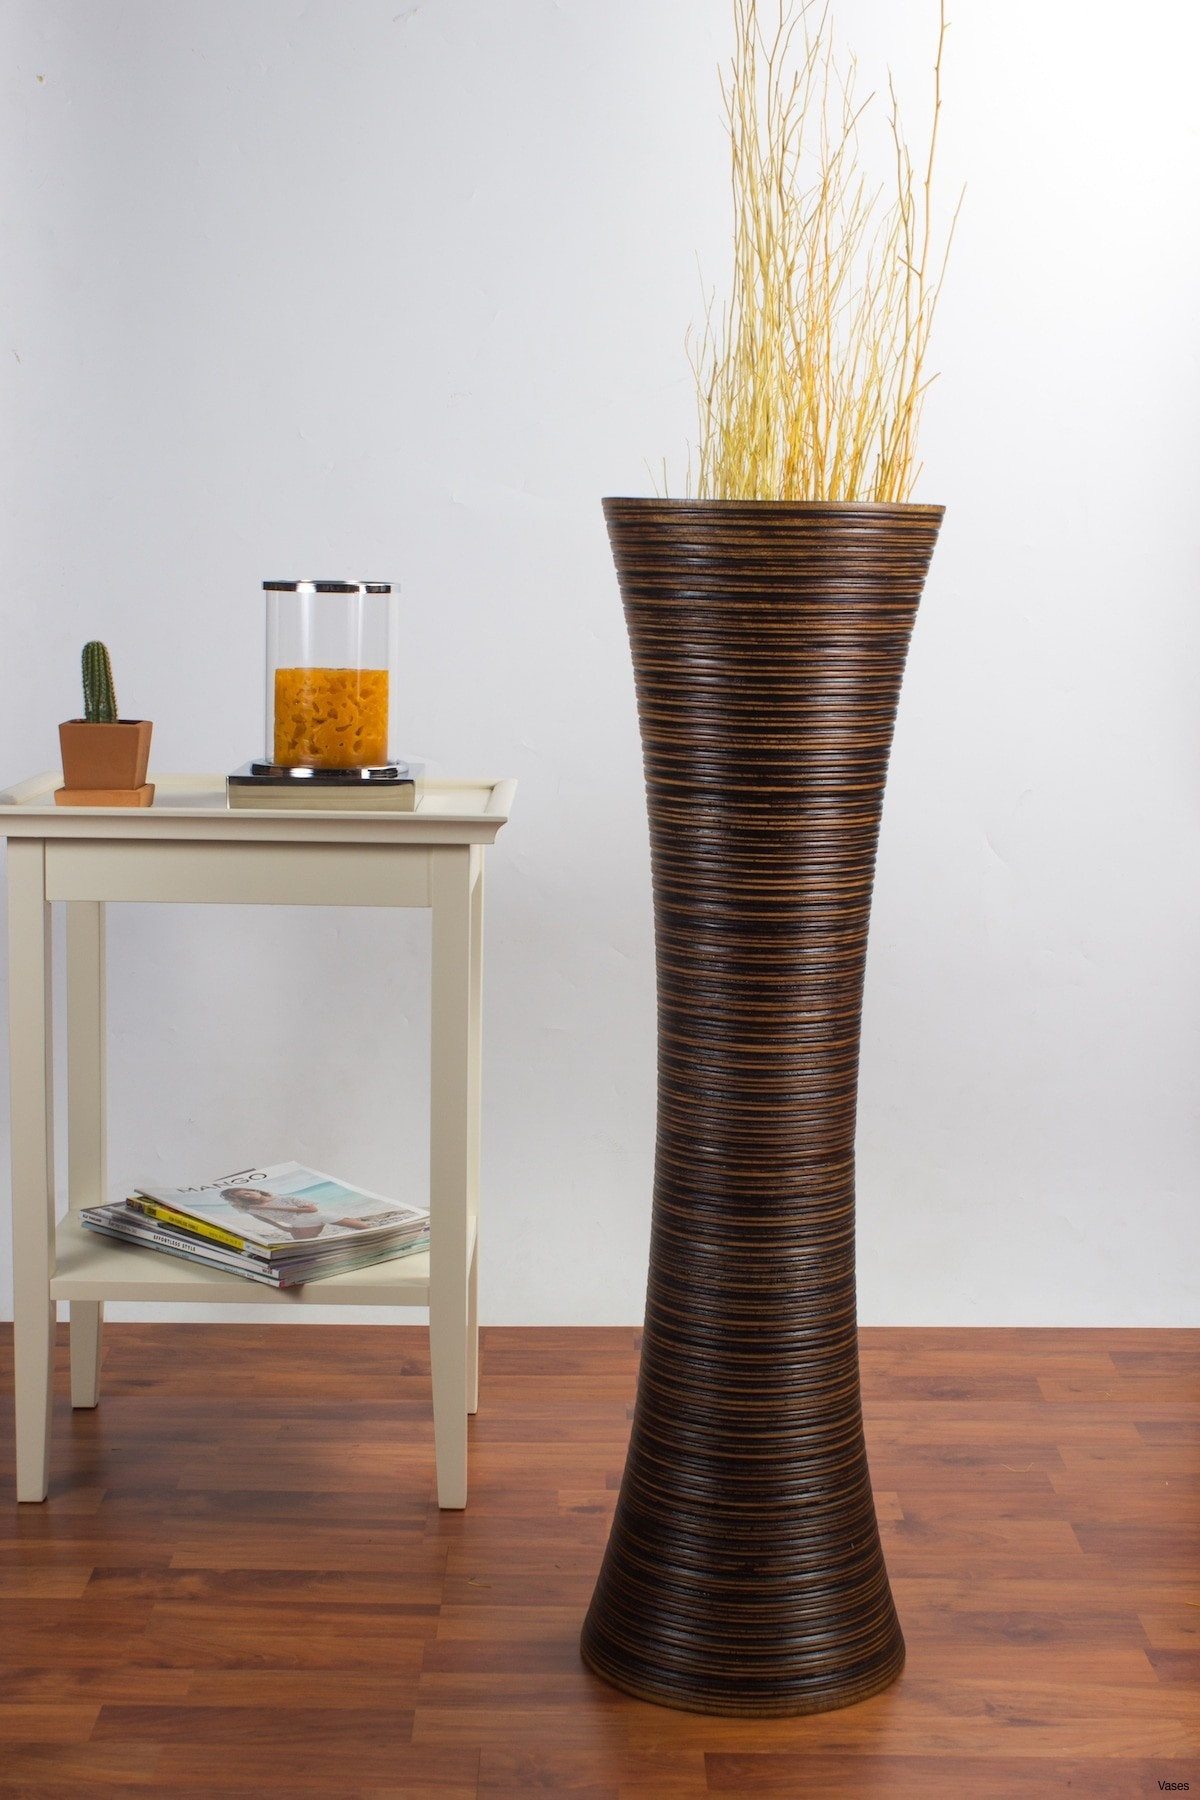 Hurricane Vase Of Floor Vase Inspirational Decorative Floor Vases Fresh D Dkbrw 5749 Throughout Floor Vase Inspirational Decorative Floor Vases Fresh D Dkbrw 5749 1h Vases Tall Brown I 0d